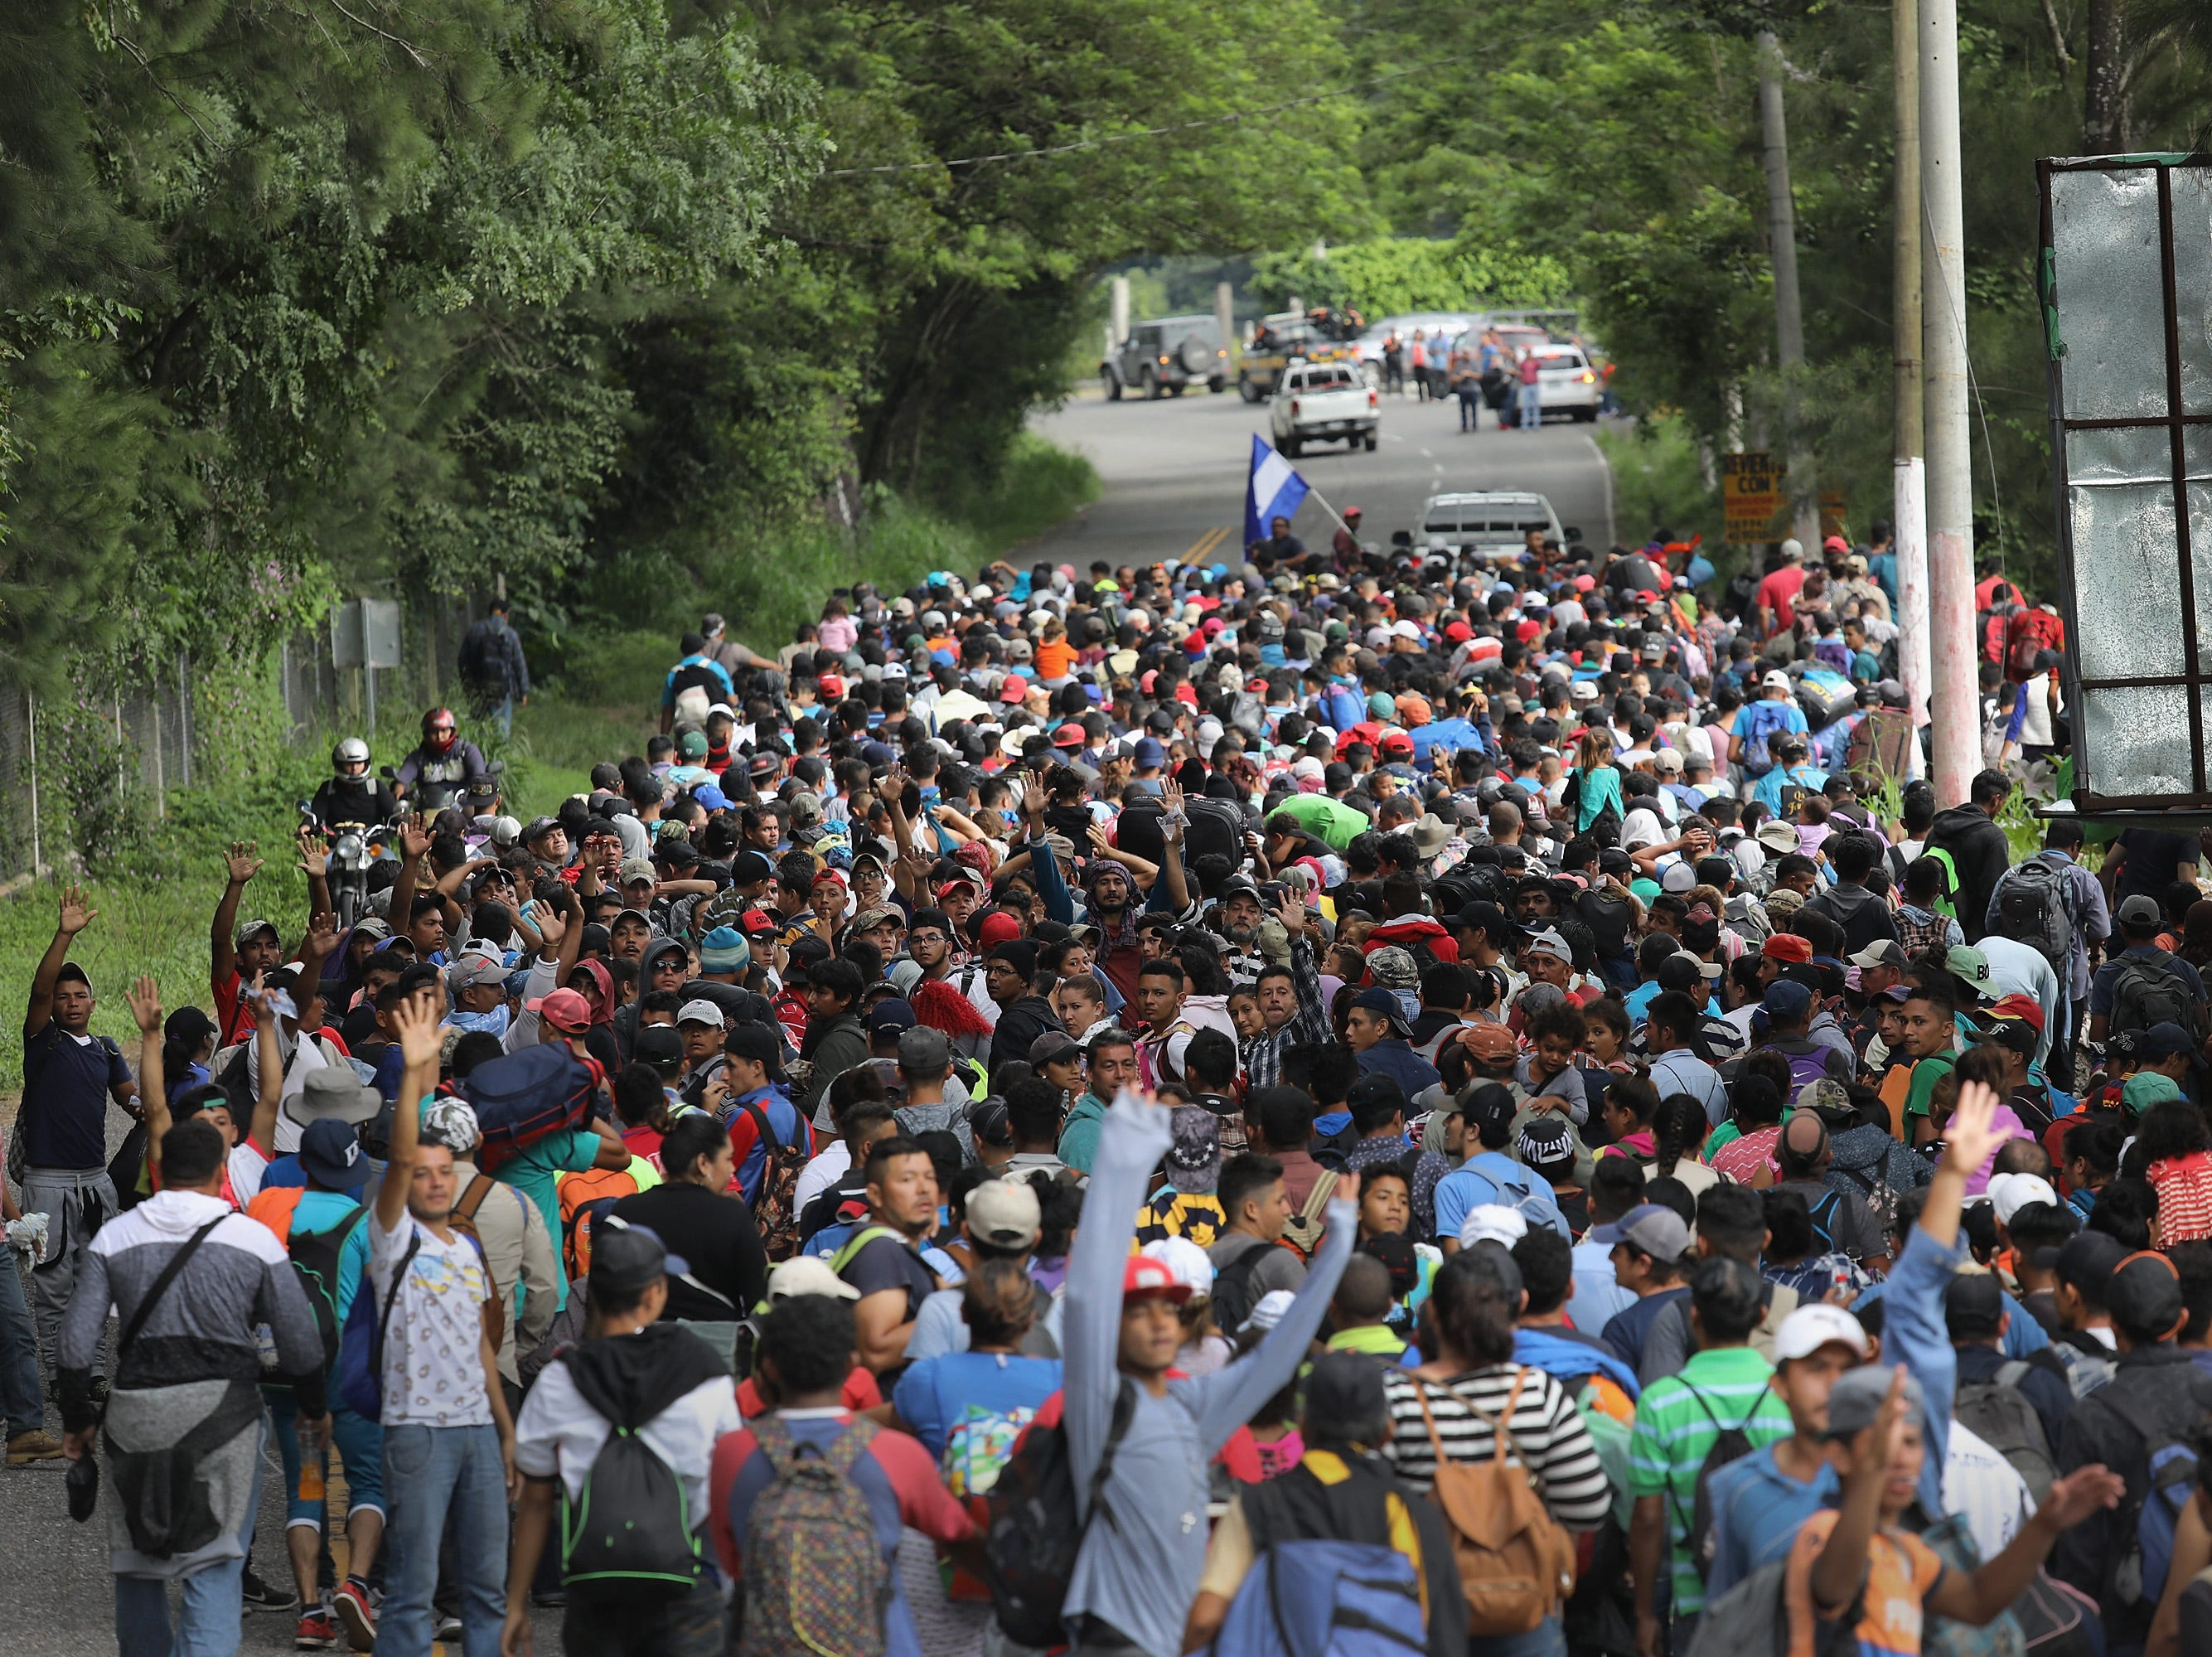 ESQUIPULAS, GUATEMALA - OCTOBER 16:  Some 1,500 Honduran immigrants walk north in a migrant caravan on October 16, 2018 near Esquipulas, Guatemala. The caravan, the second of its size in 2018, began last week in San Pedro Sula, Honduras with plans to march north through Guatemala and Mexico in route to the United States.  (Photo by John Moore/Getty Images)